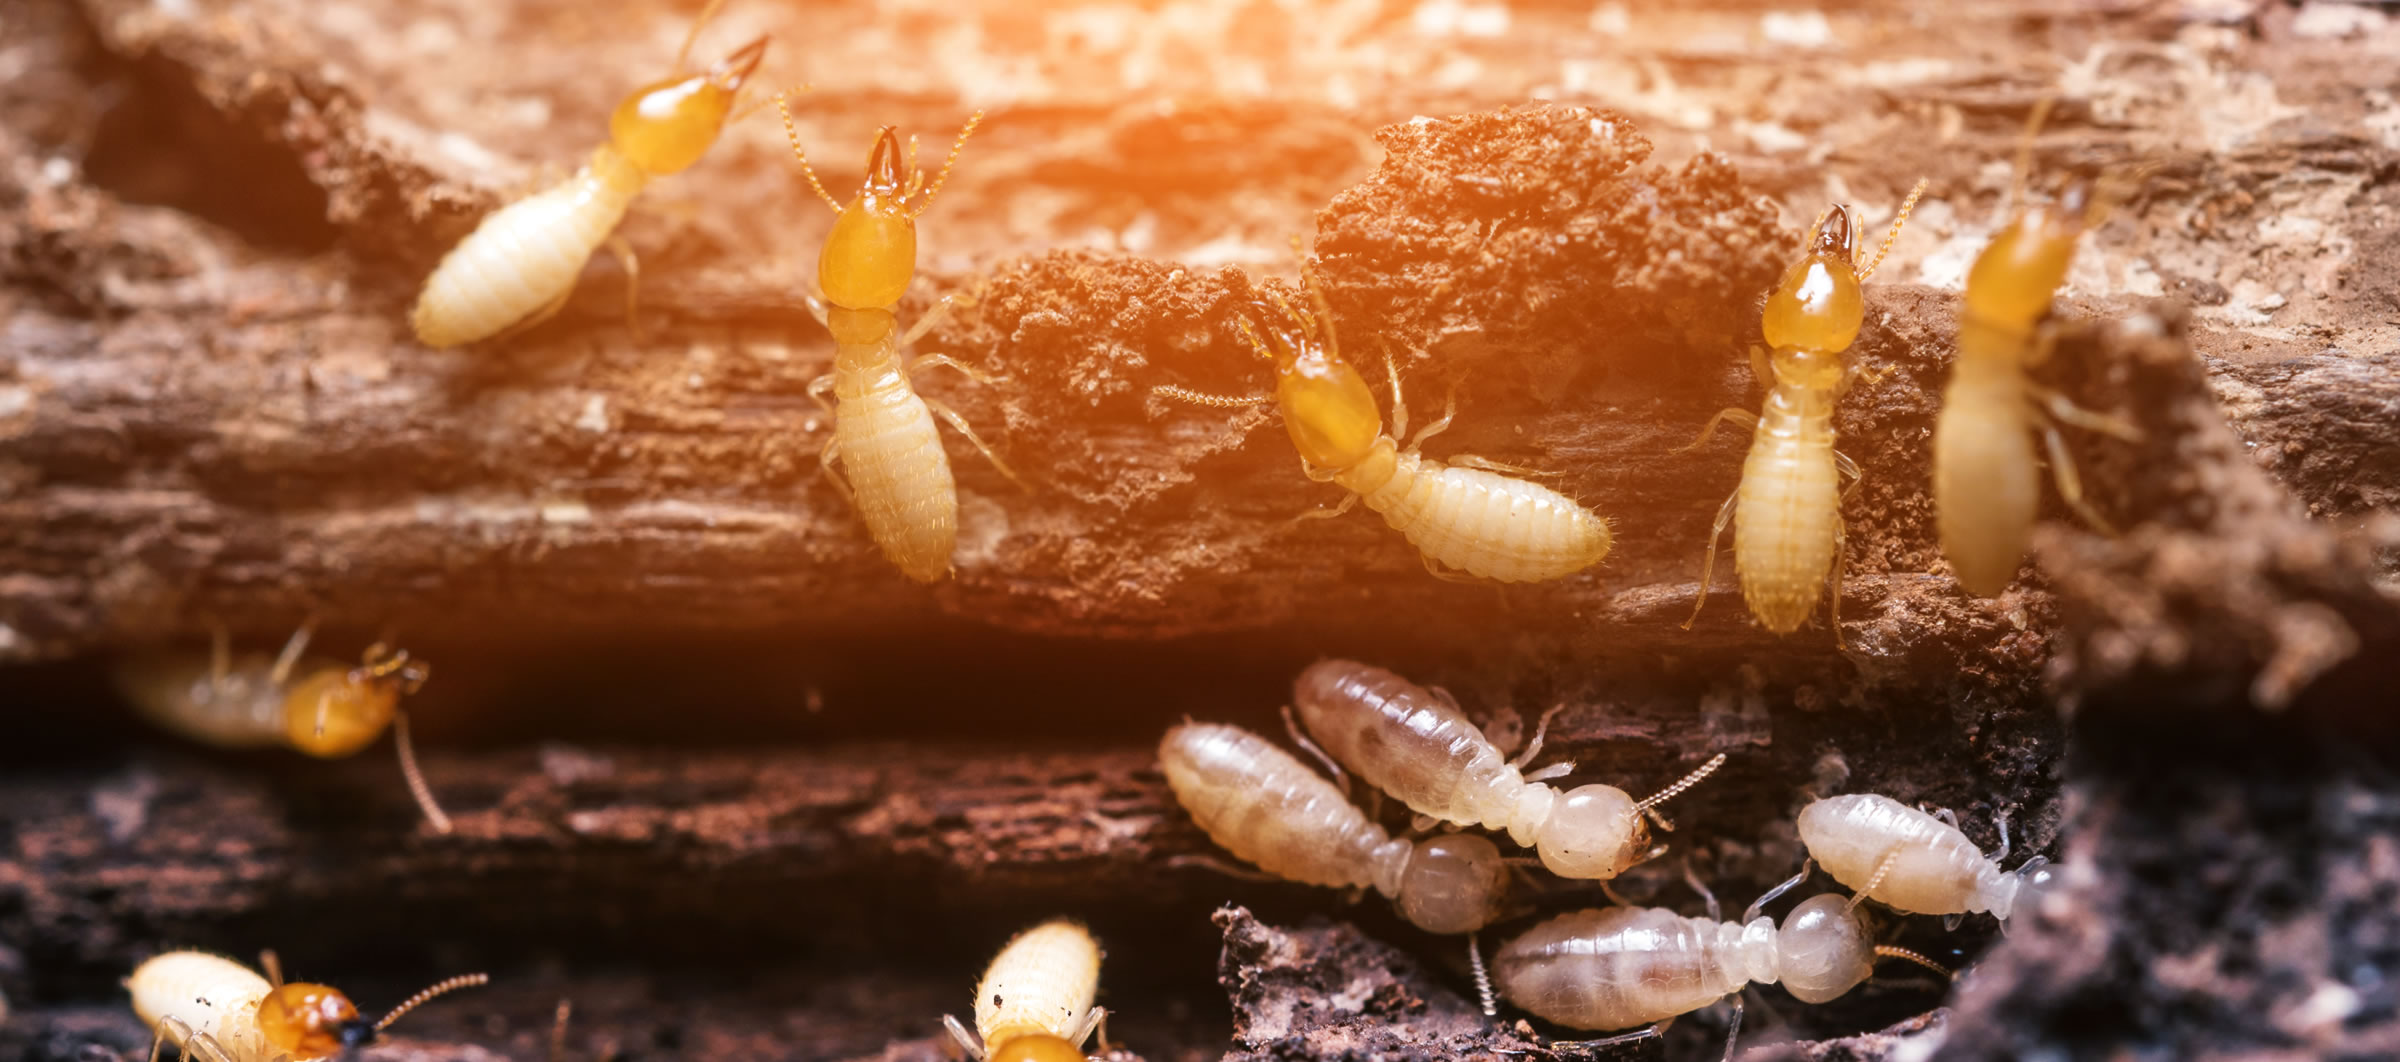 Ways to Get Rid of Termites Naturally